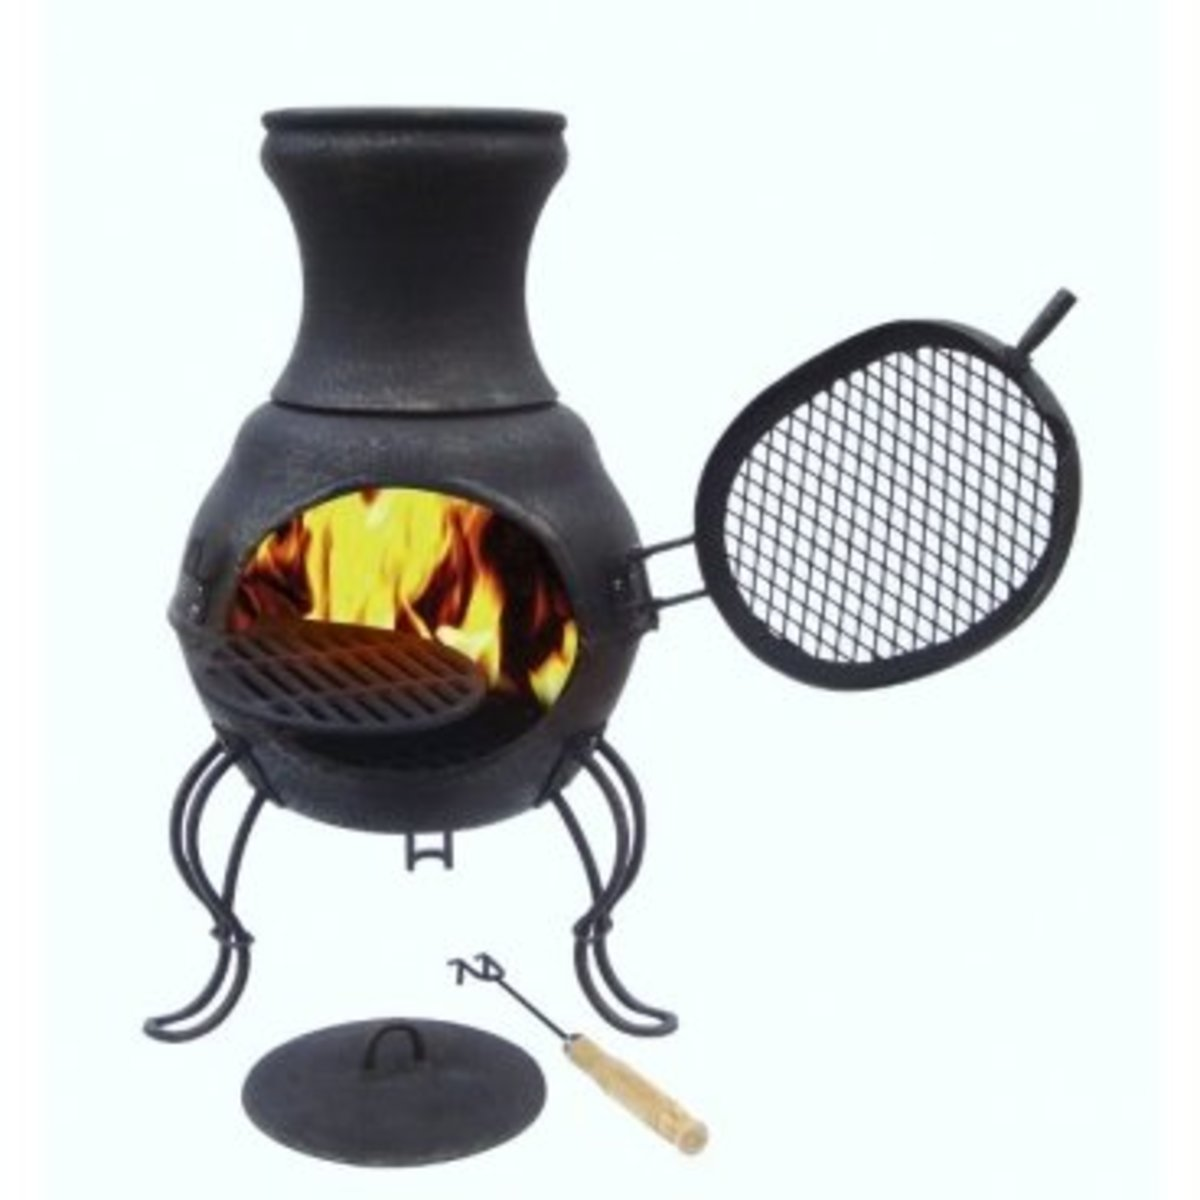 Read on to find out more about starting a fire in your chiminea.